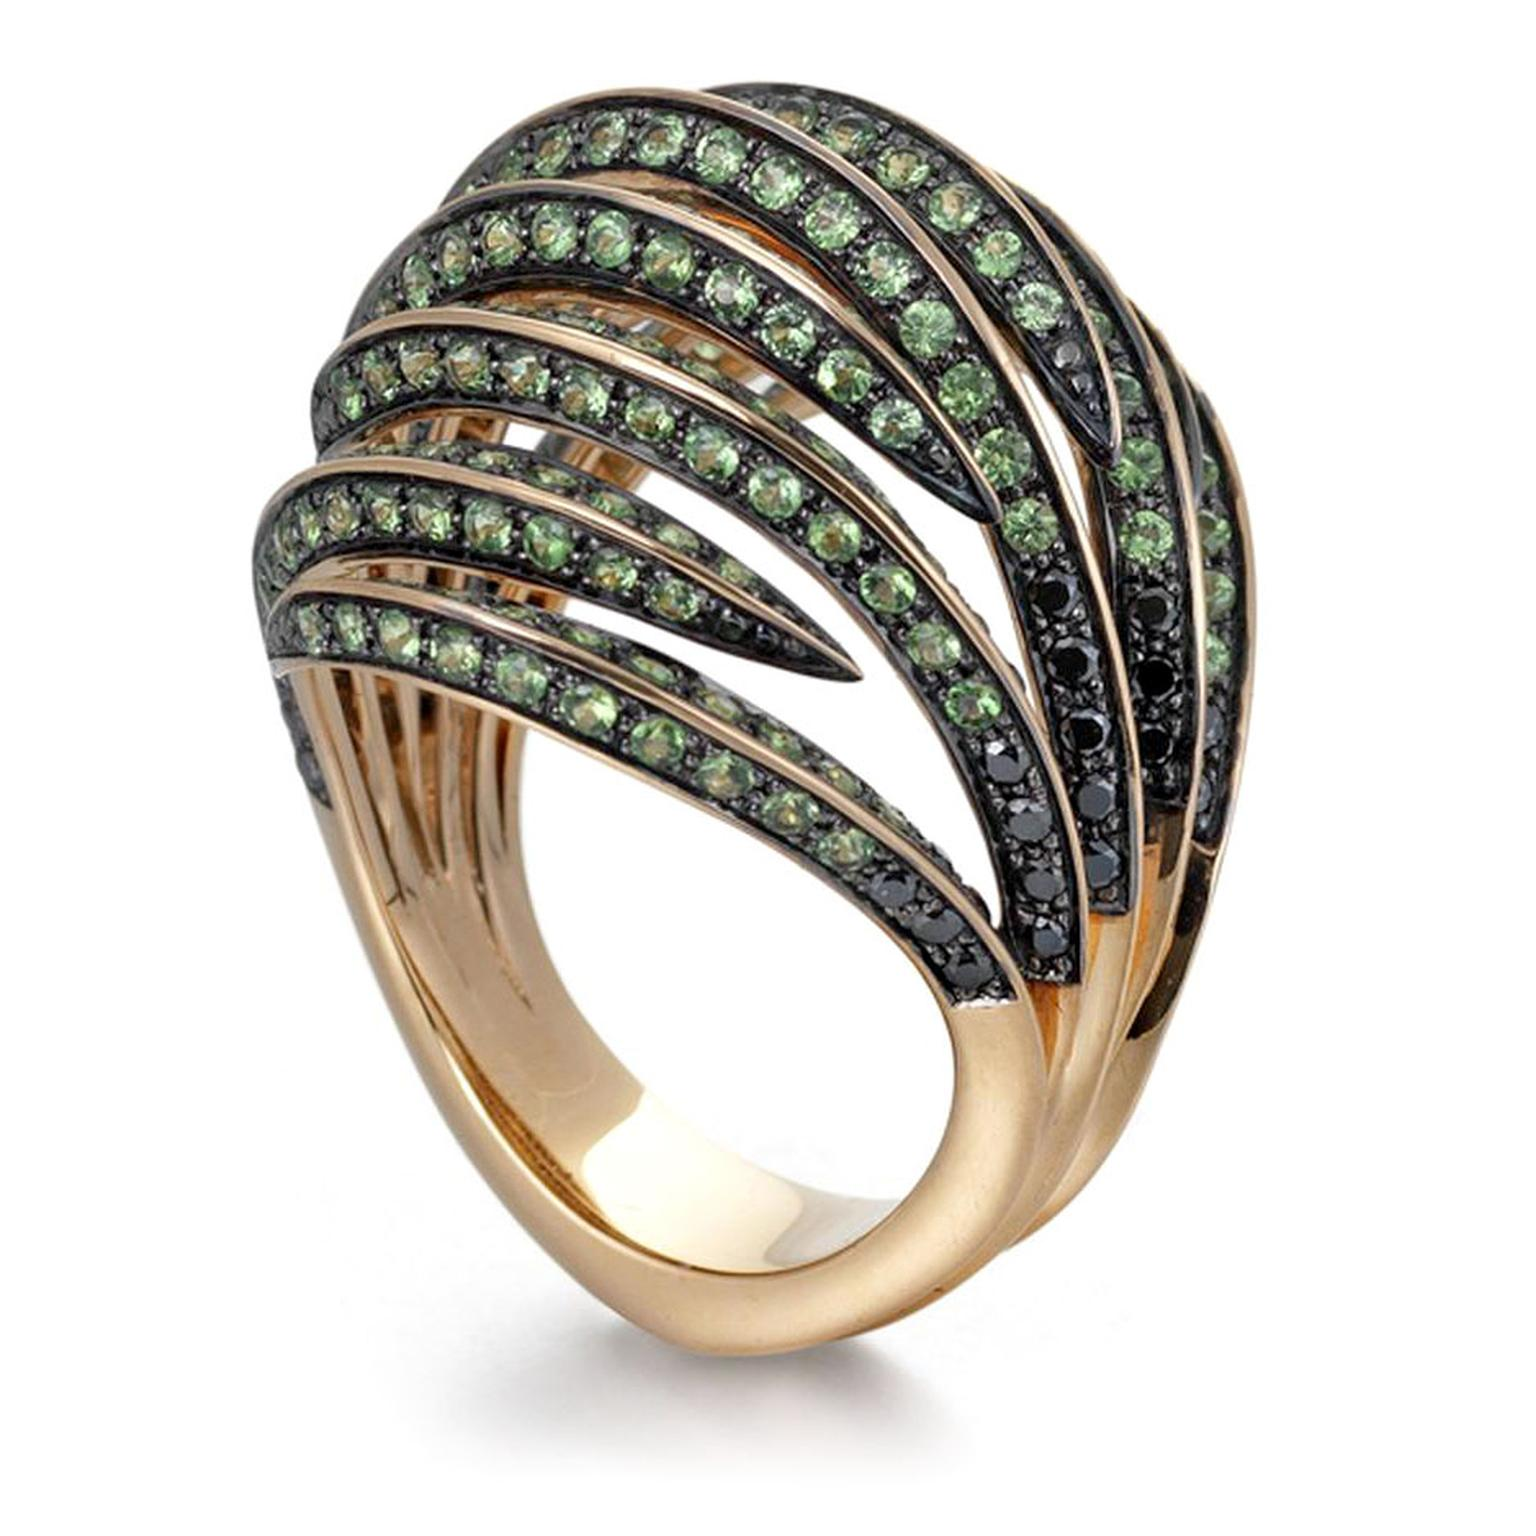 Venus Fly Bombay Ring.  Travosrite, black diamonds, 18ct rose gold by Tomasz Donocik. Price from £5,200